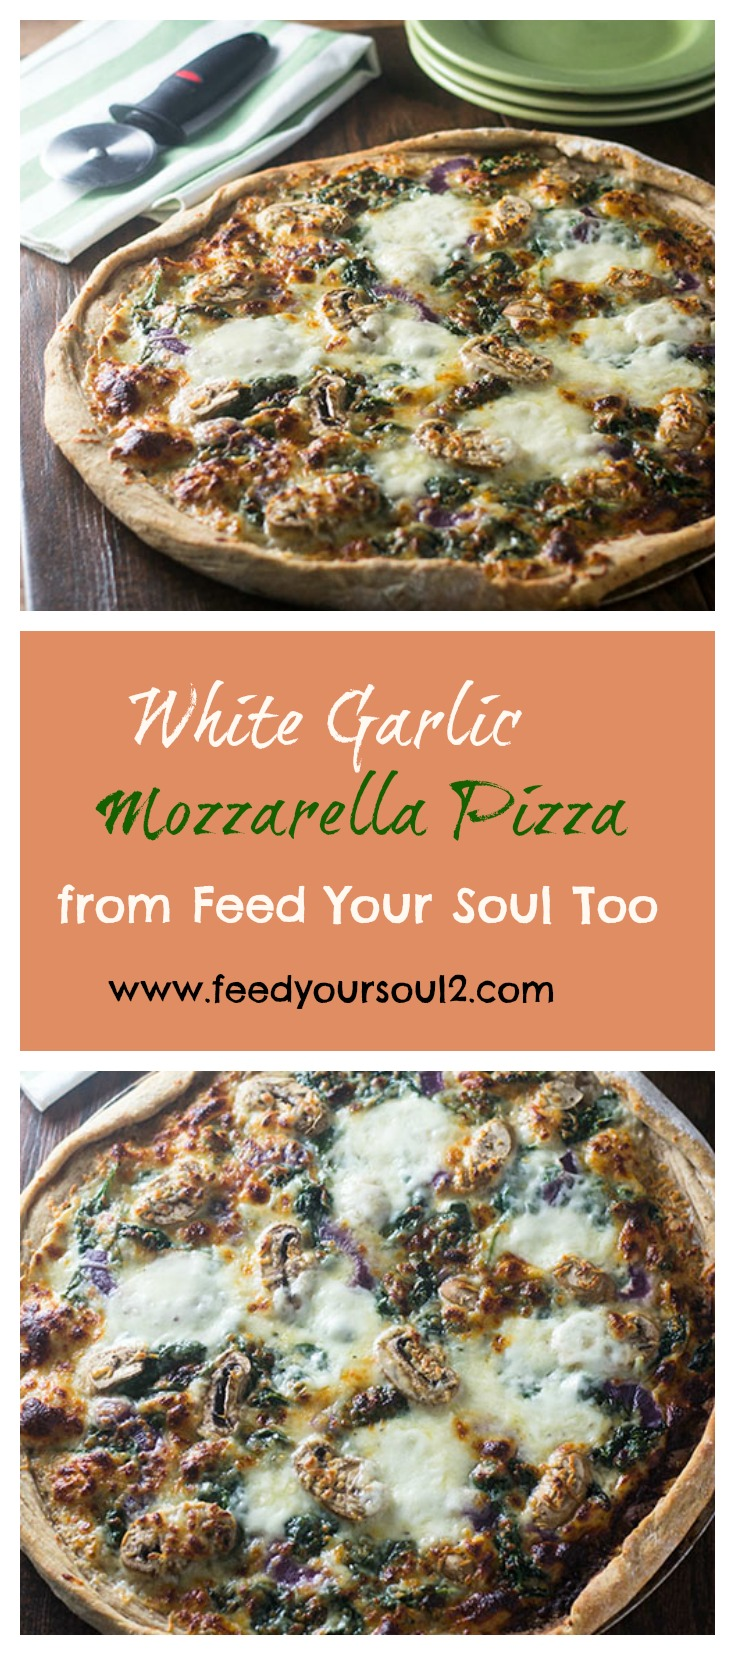 White Garlic Mozzarella Pizza #dinner #vegetarian #garlic #pizza | feedyoursoul2.com